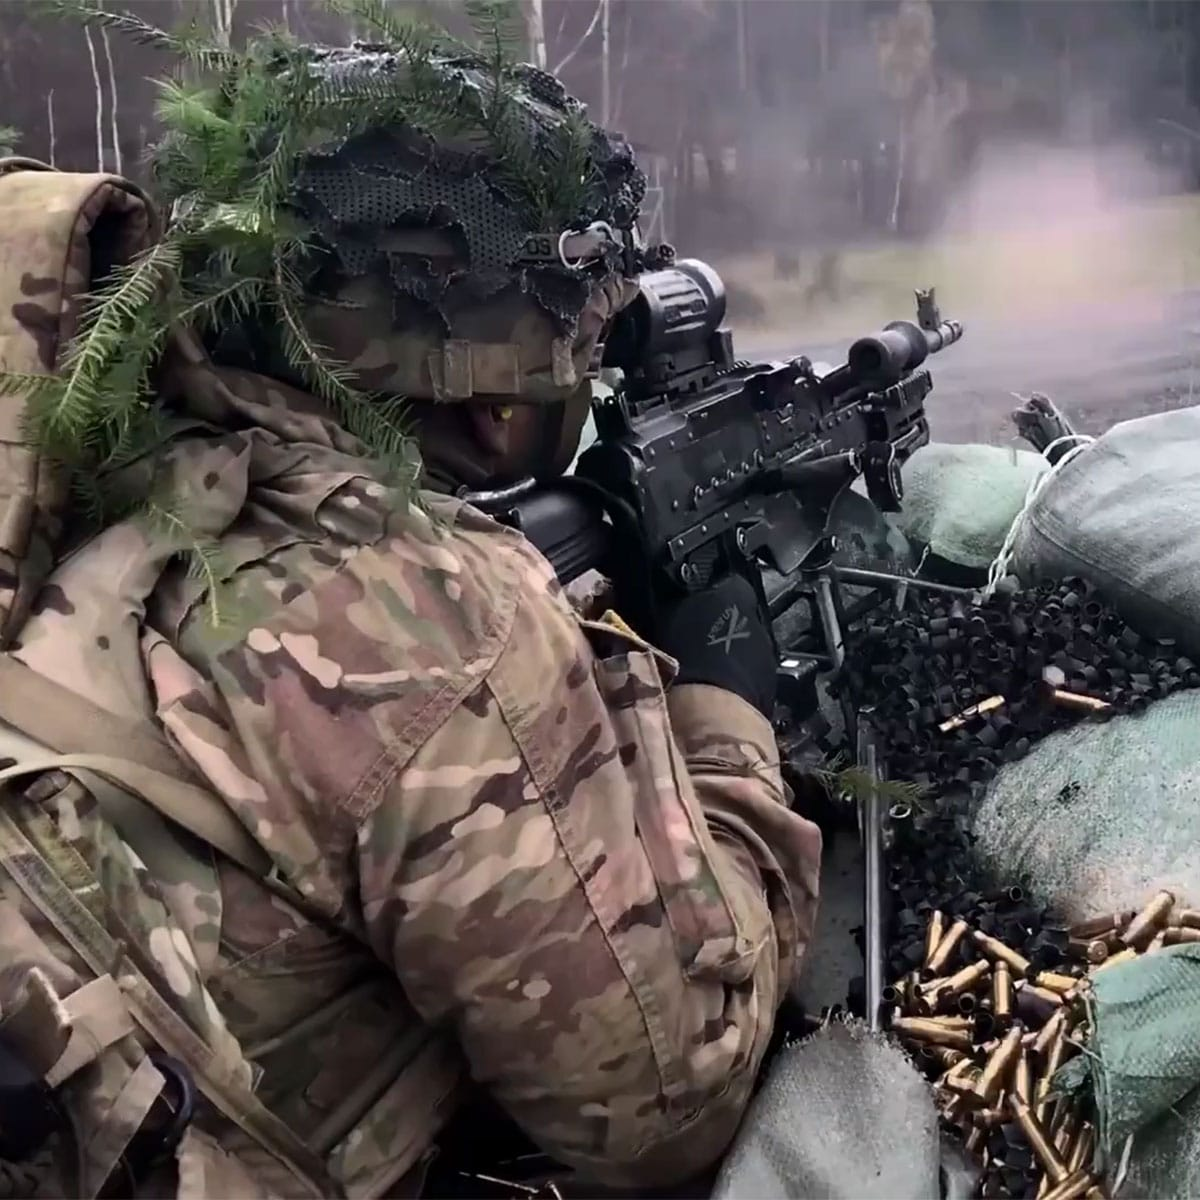 US Army Sky Soldiers assigned to the 173rd Airborne Brigade Paratroopers conduct a live fire training exercise as part of Eagle Strike 17.